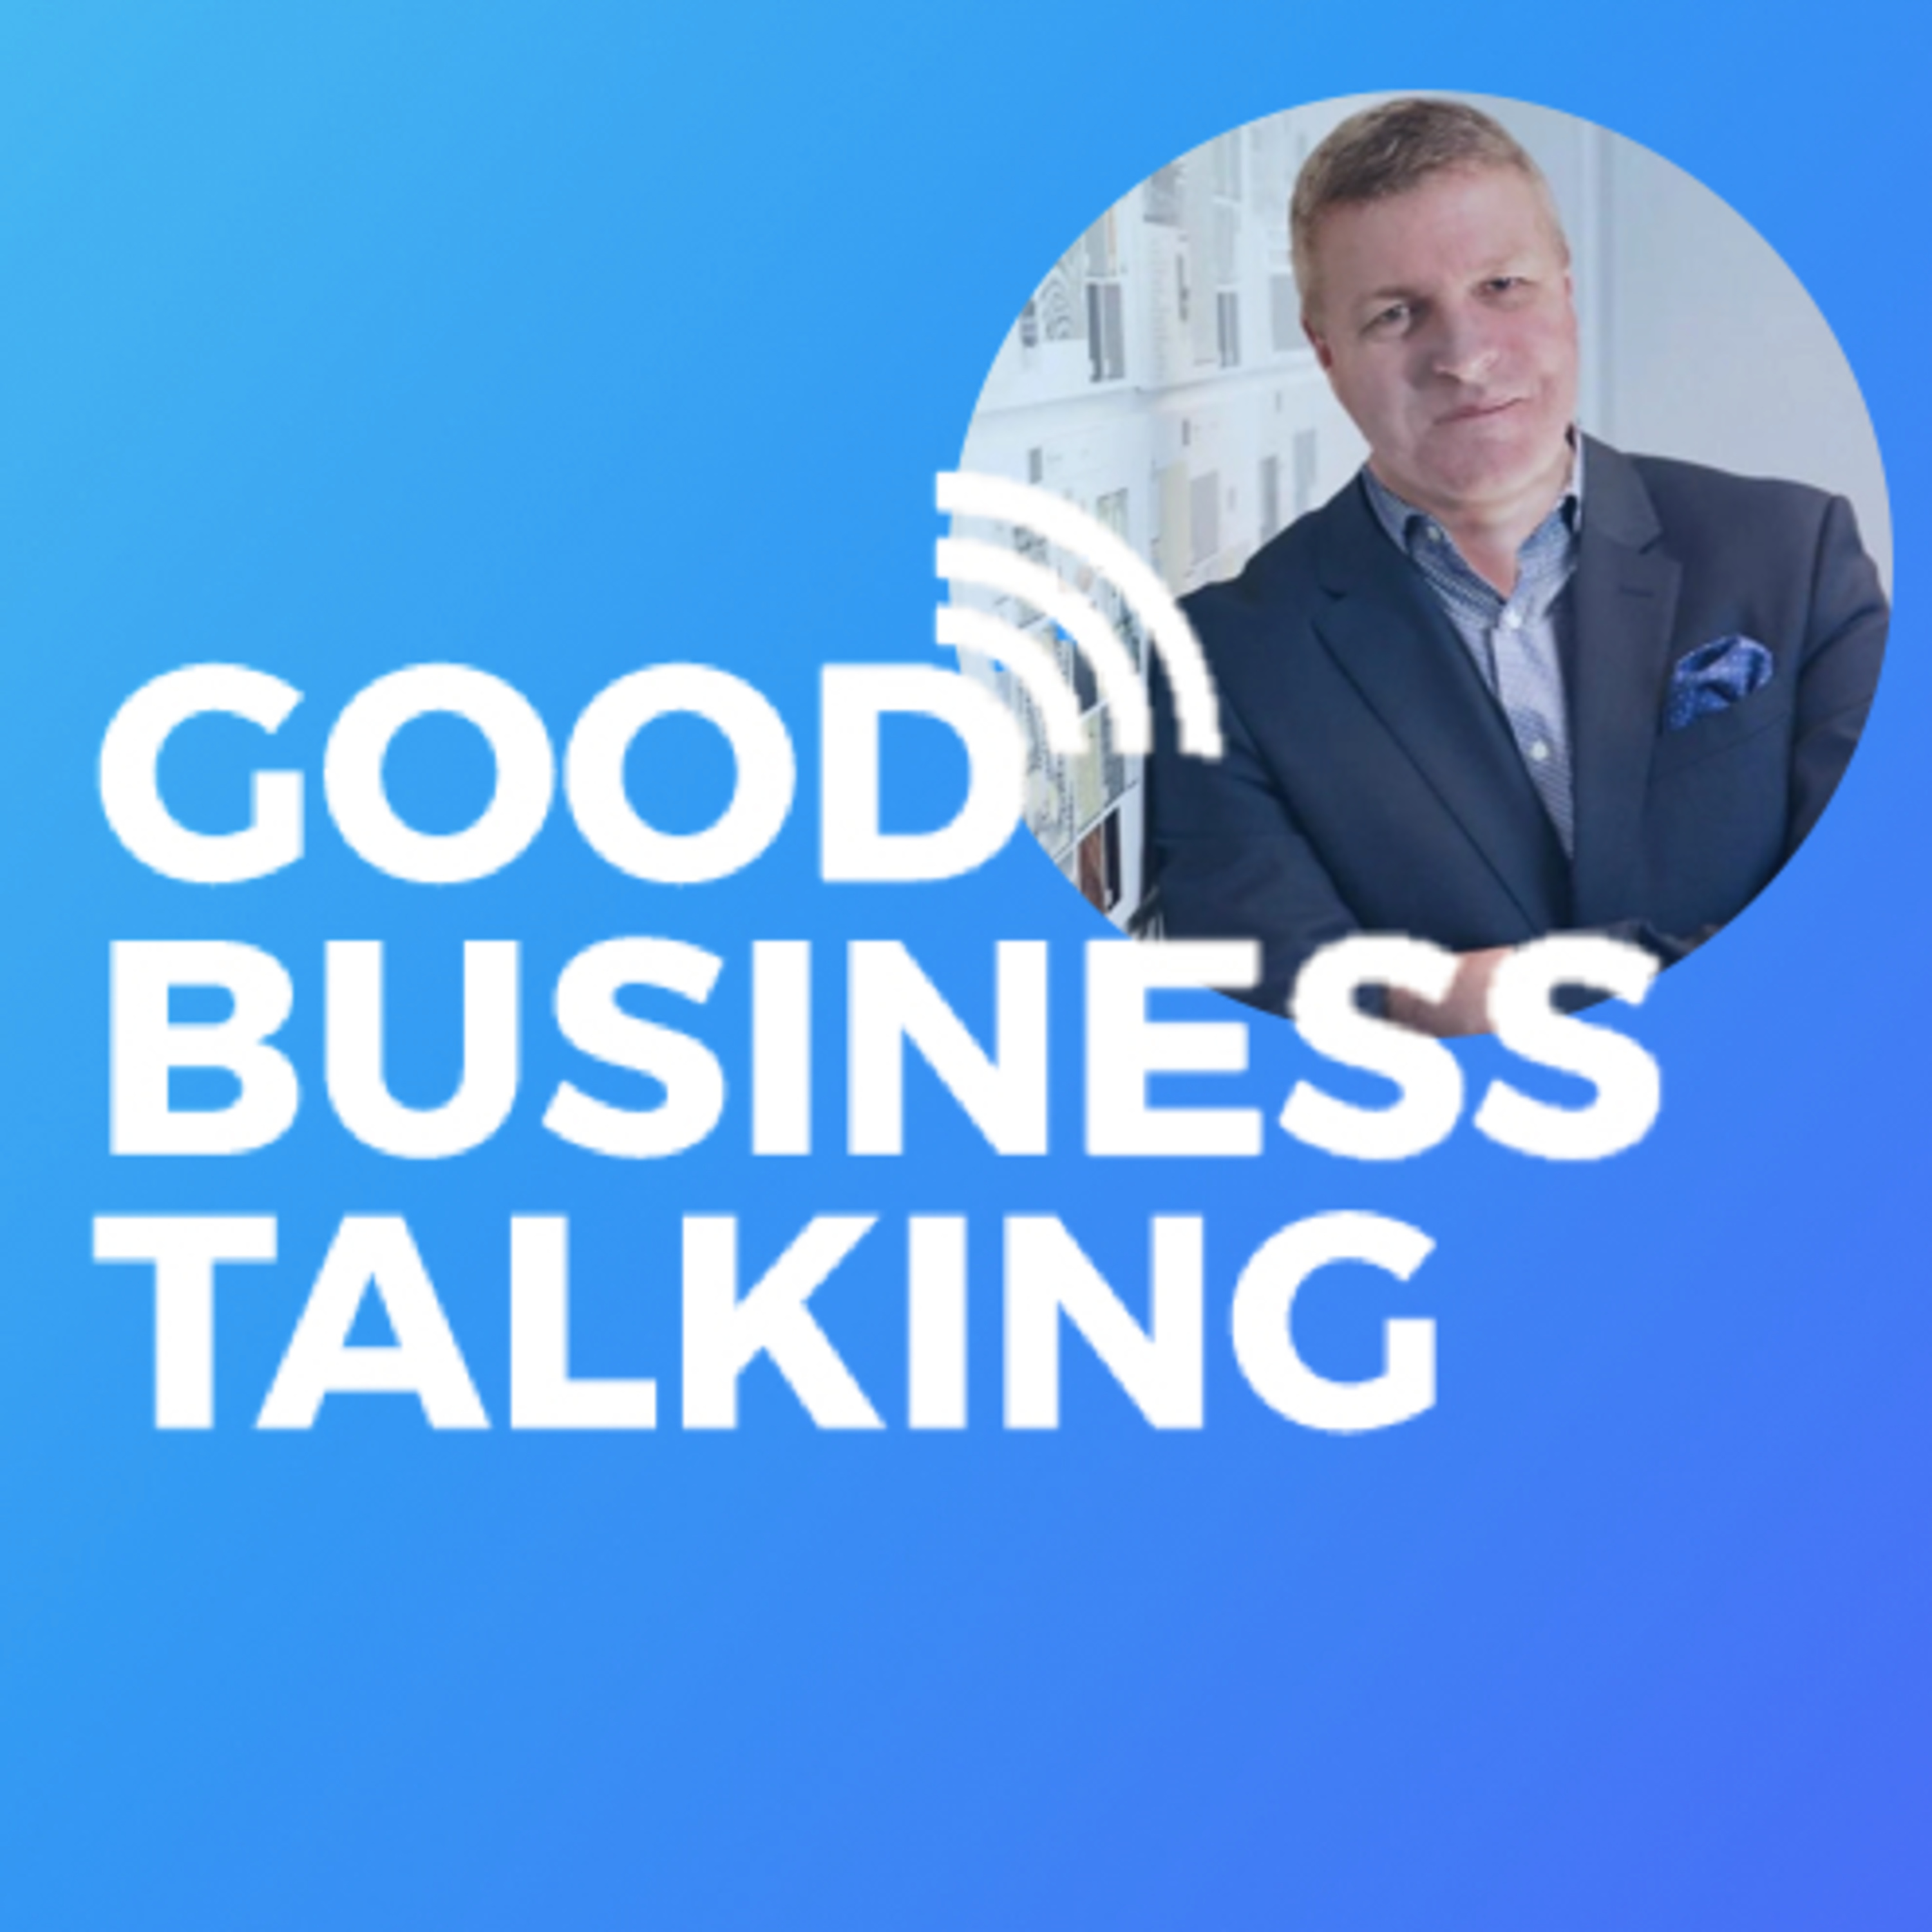 Alistair Wickens - CEO and Founder of Goscombe Group